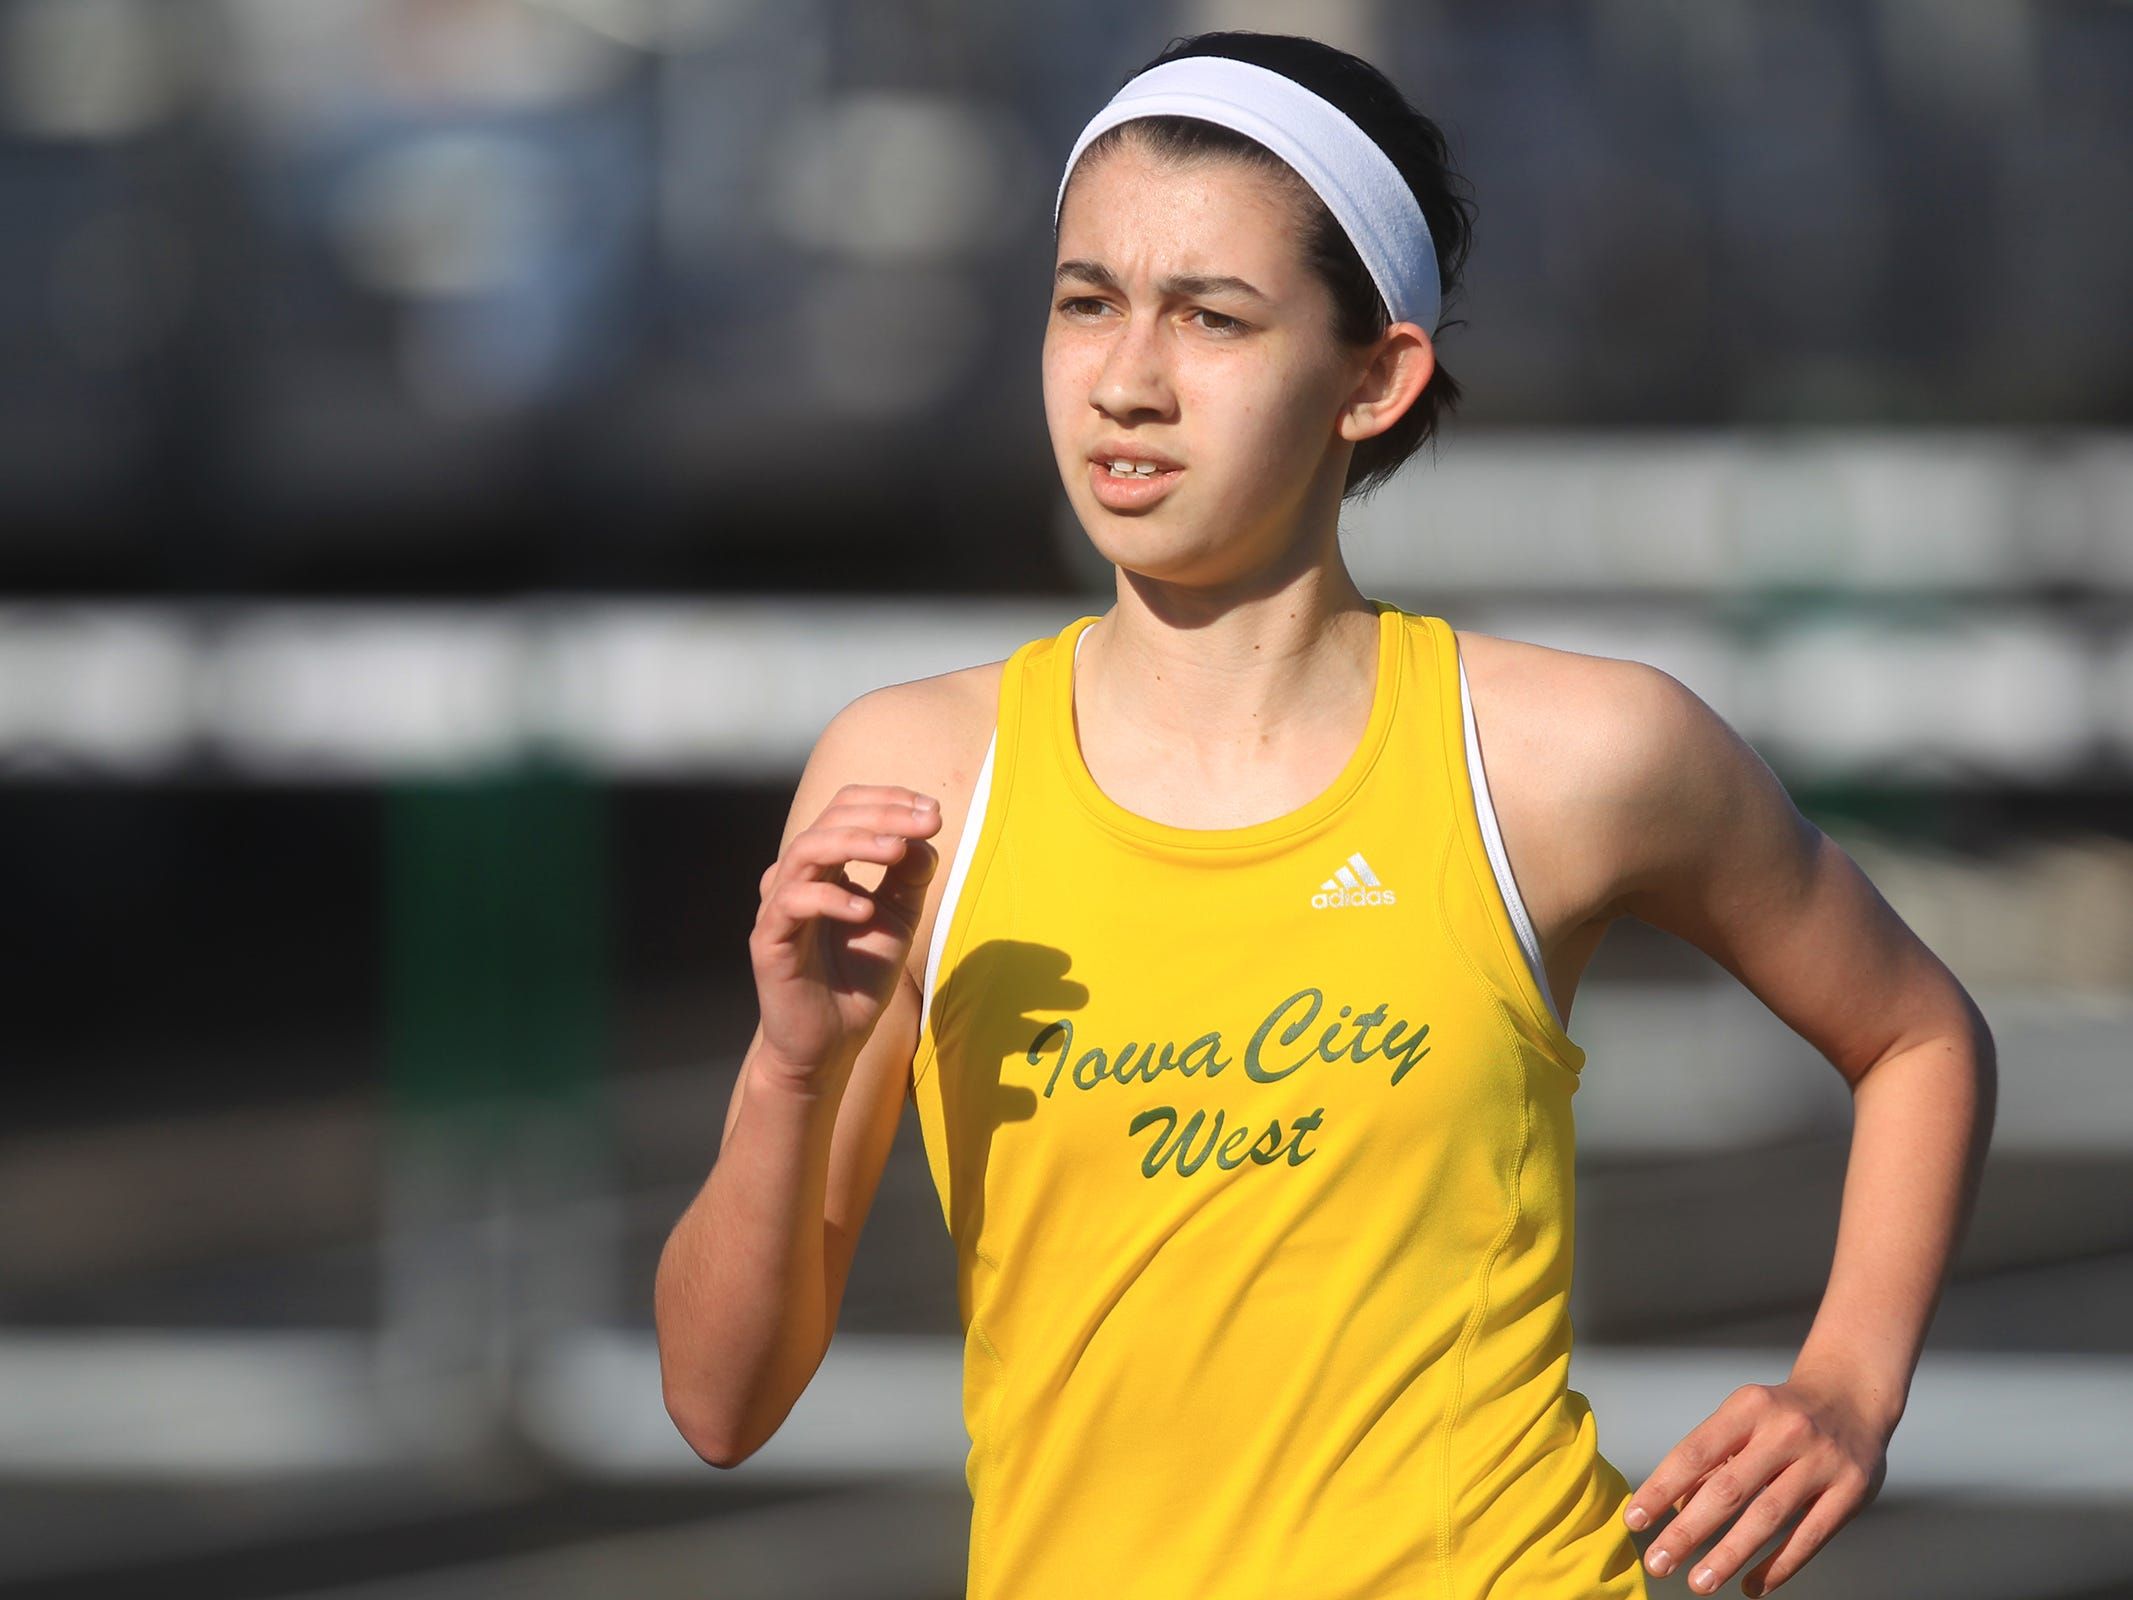 West High's Olivia Moore competes in the 3000 meter run at the Women of Troy Relays at West High on Tuesday, March 31, 2015. David Scrivner / Iowa City Press-Citizen